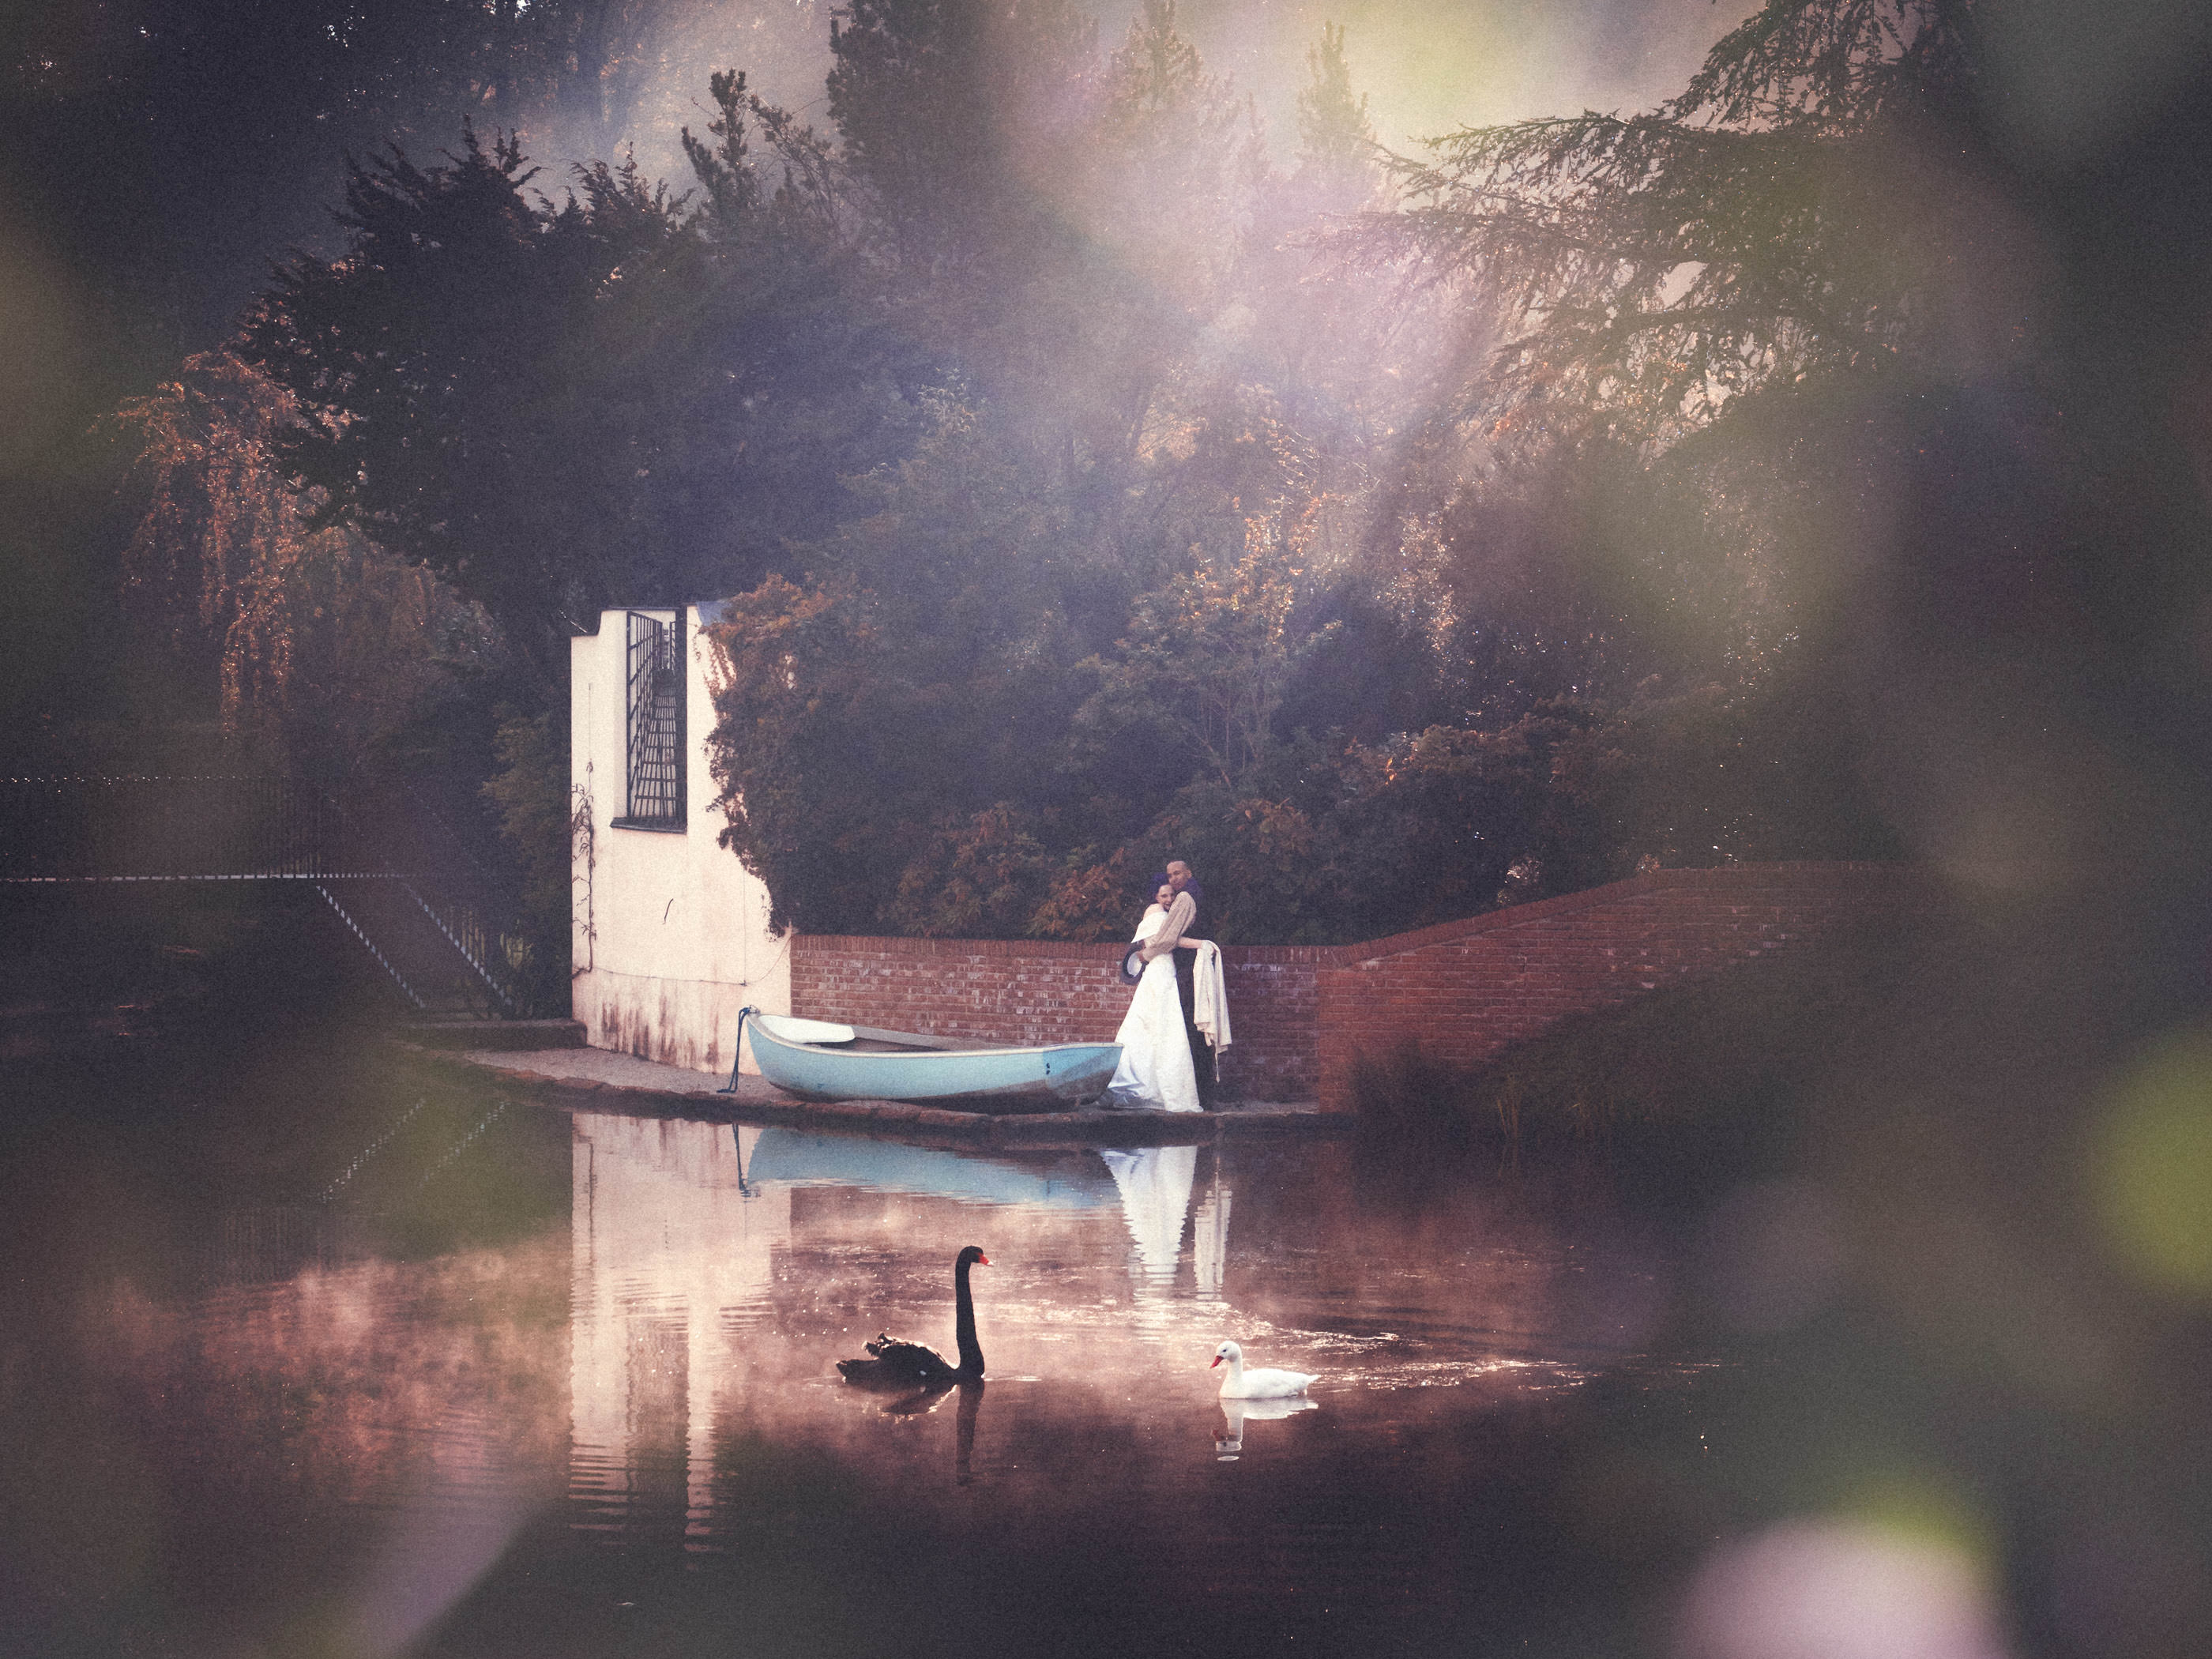 Weddingphoto at dawn, couple with swans in morninglight